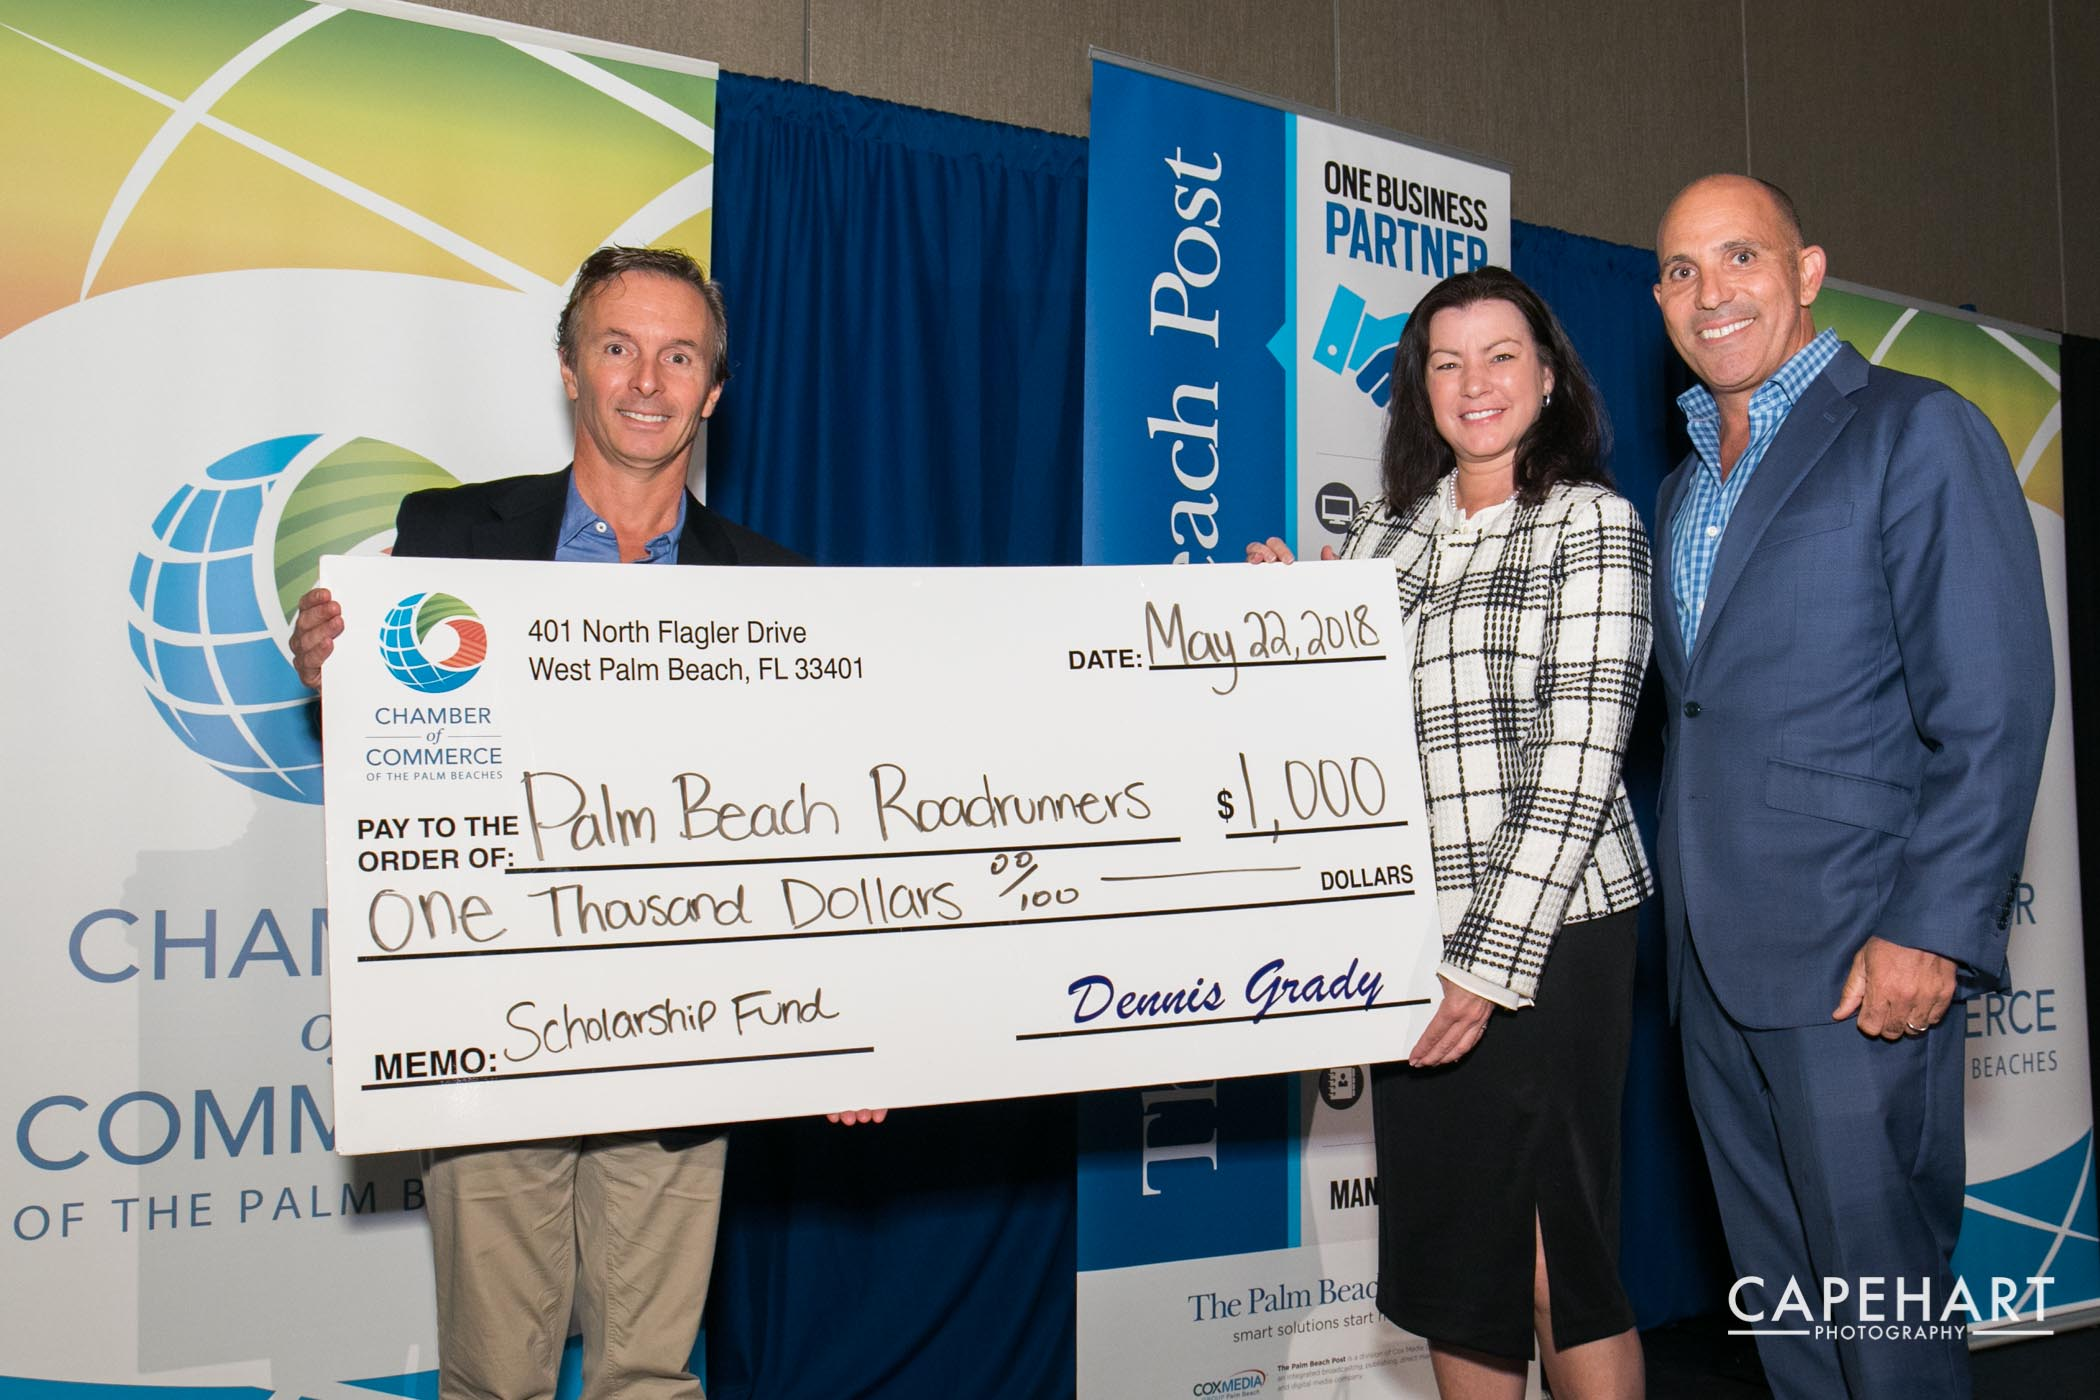 The Chamber Of Commerce Of The Palm Beaches Presented The